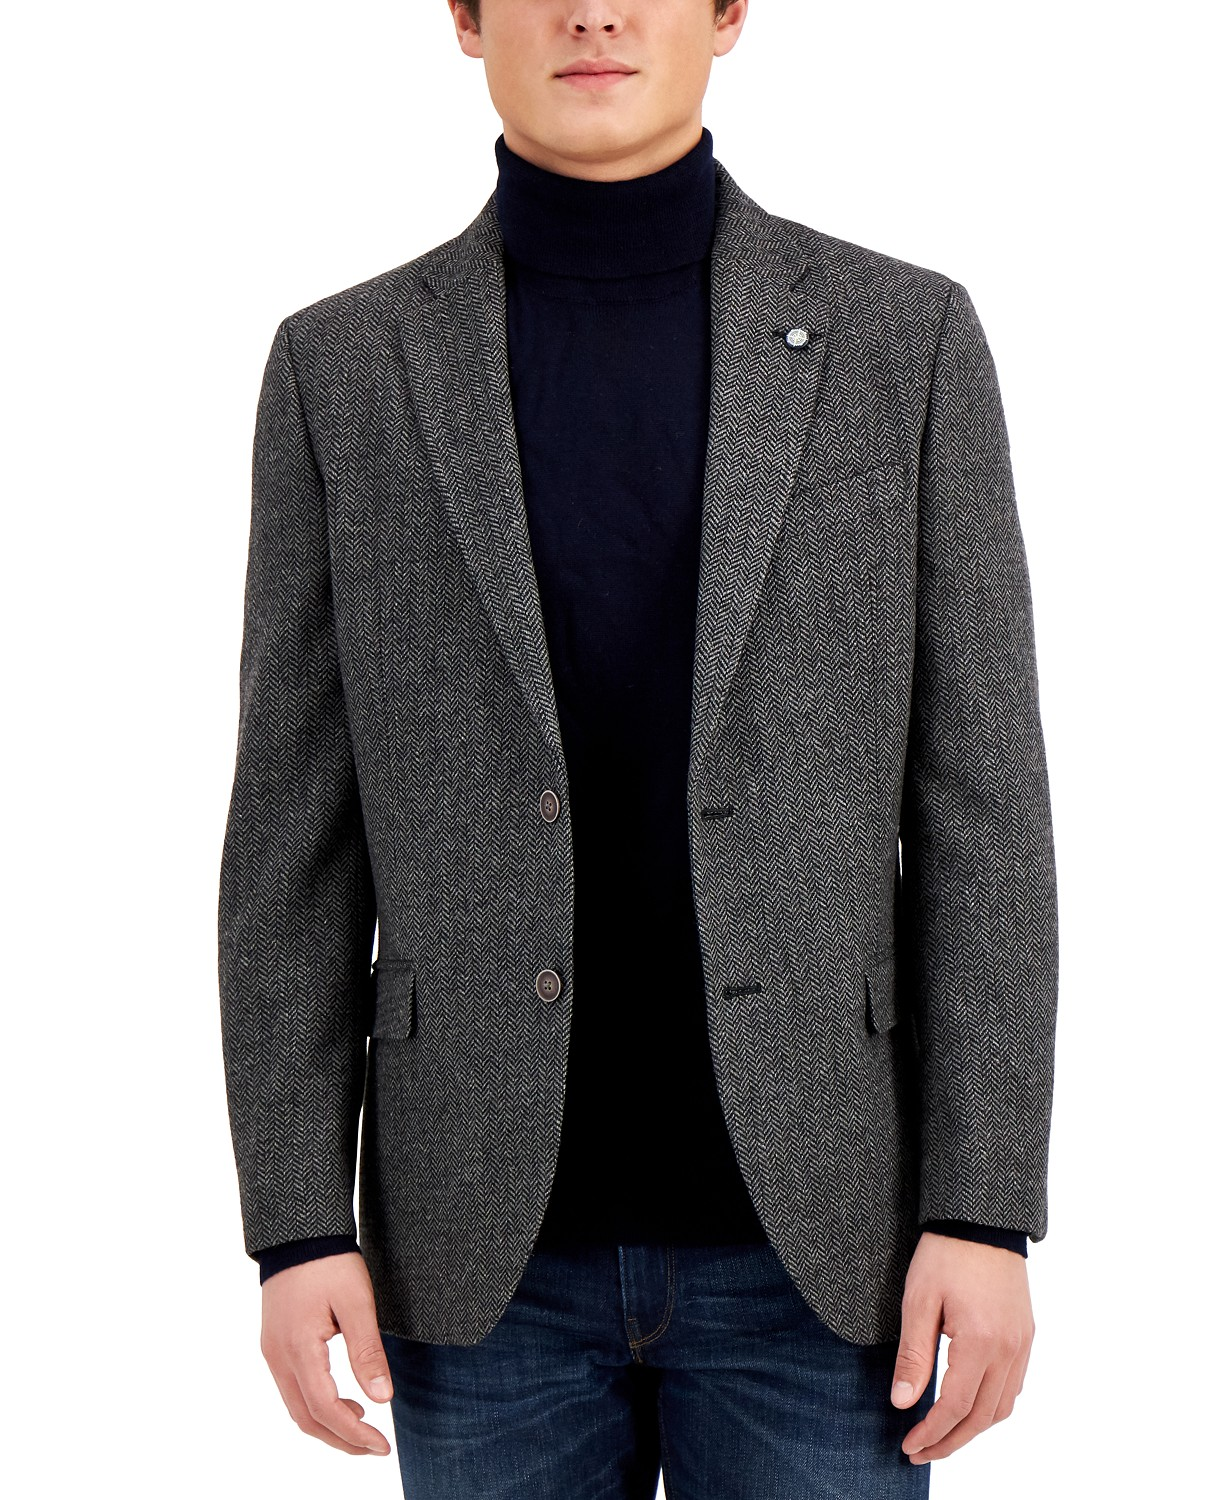 Nautica Mens Modern-Fit Wool Blazer $49.99 (83% off)